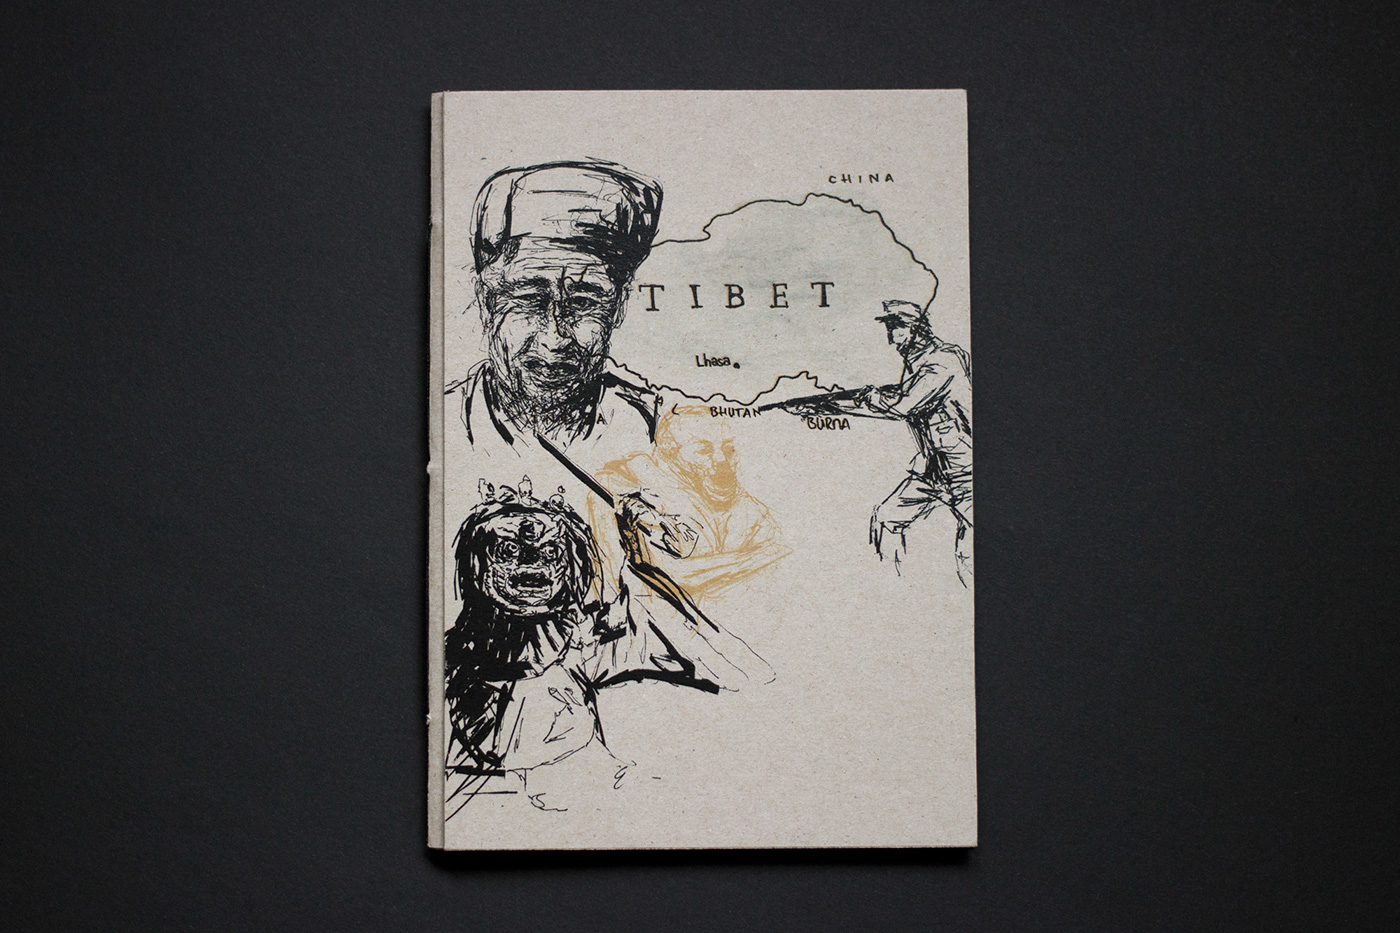 tibet hymne hymn acryl book paper Buddhismus buddhism DALAILAMA freedom tradition Buddha religion War china